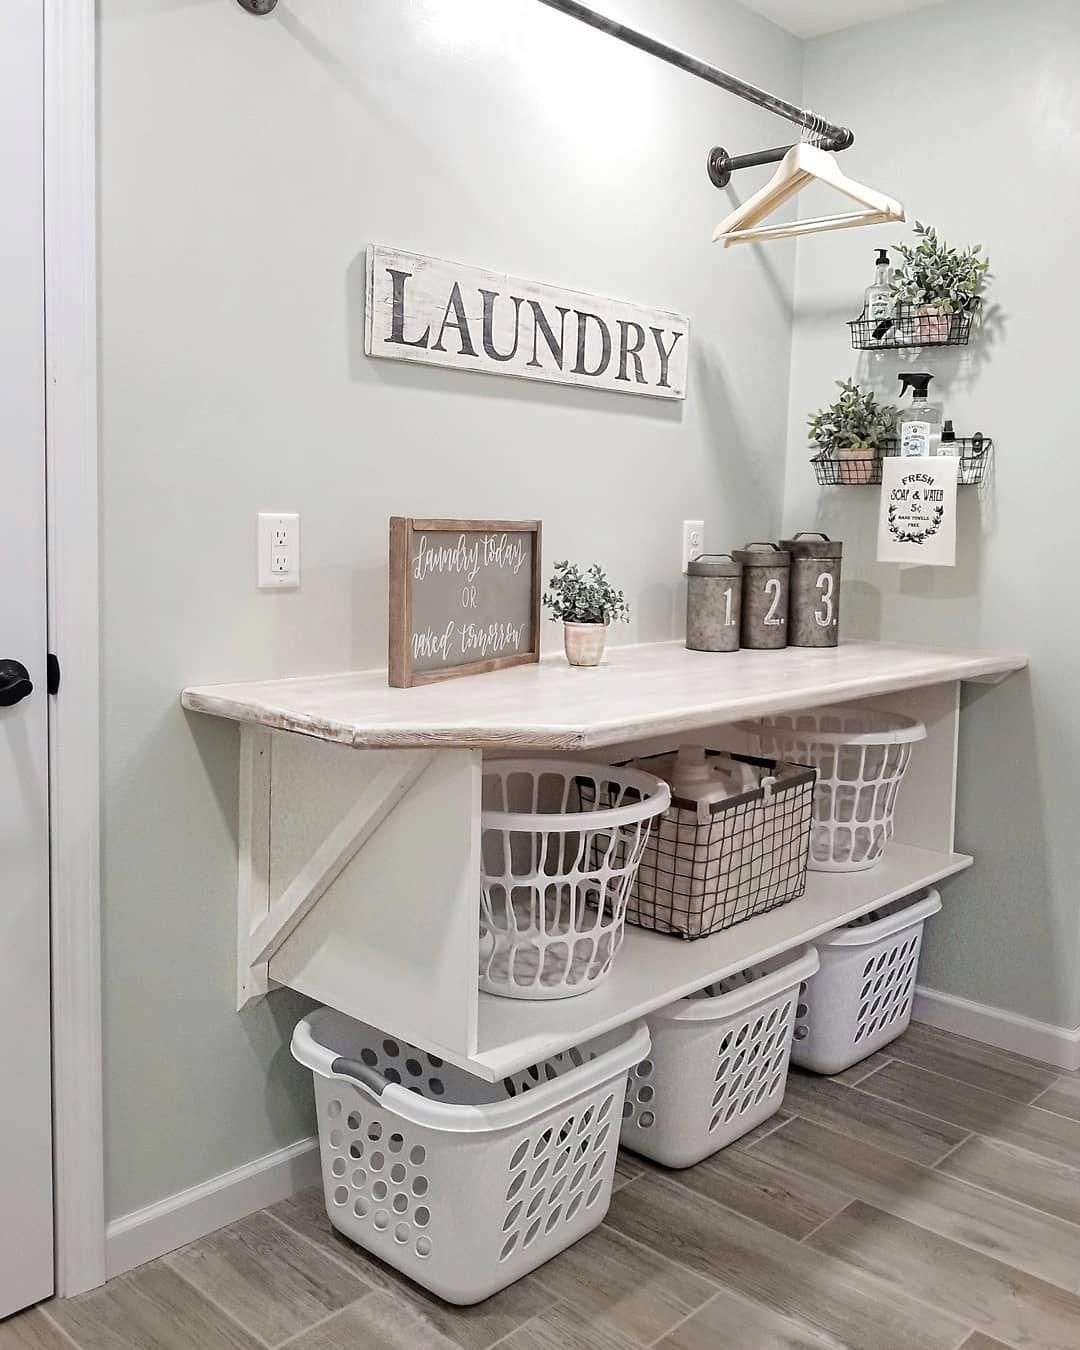 How To Design A Kitchen You Will Not Get Tired Of Laundry Room